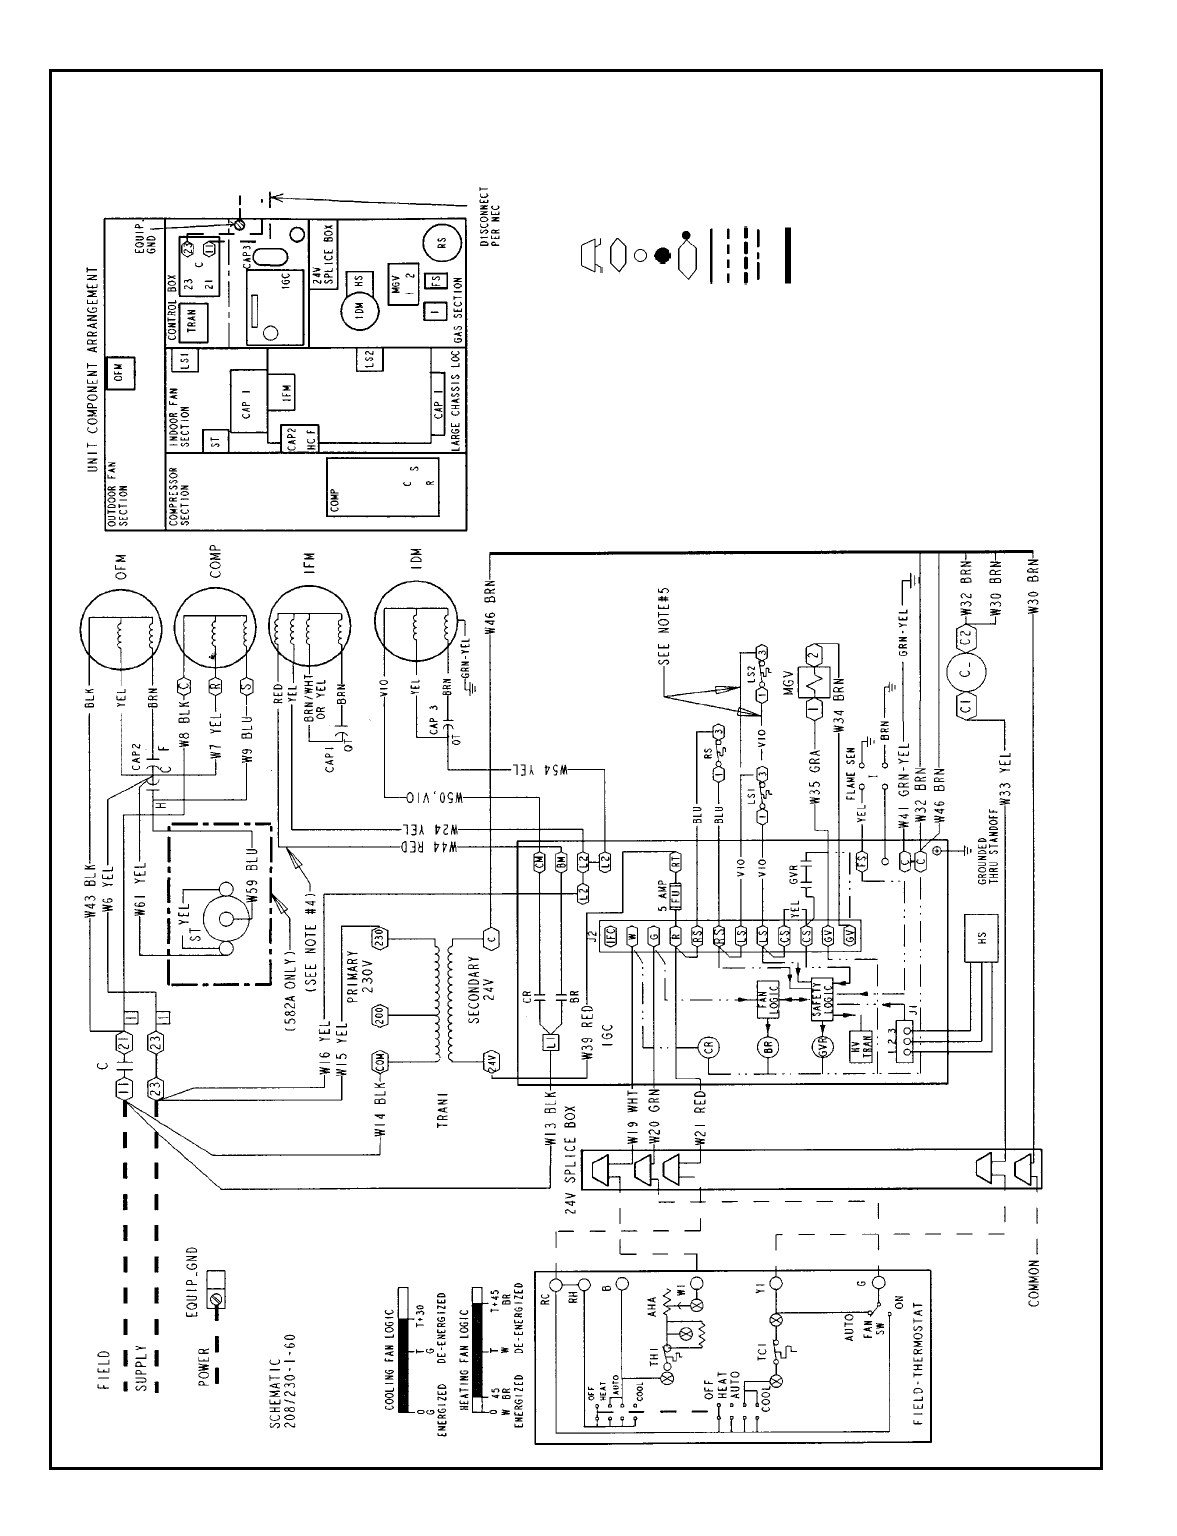 Bryant 582A TYPICAL WIRING SCHEMATIC, 582A018-060; 208/230